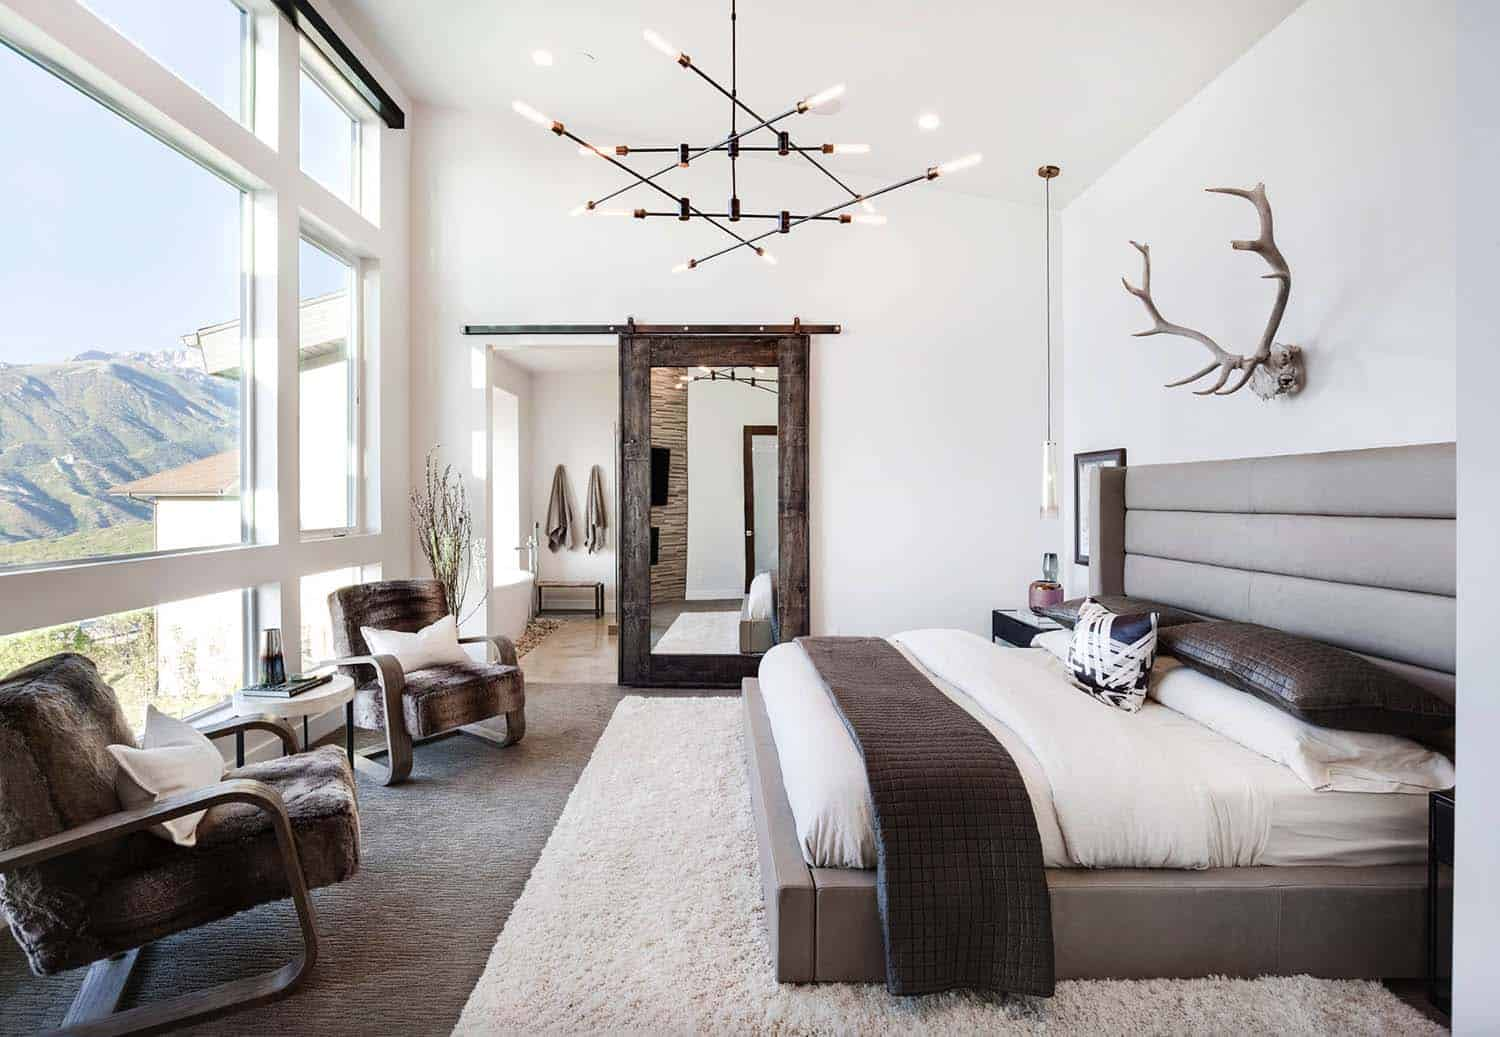 Rustic Modern Home-Ezra Lee Design Build-14-1 Kindesign